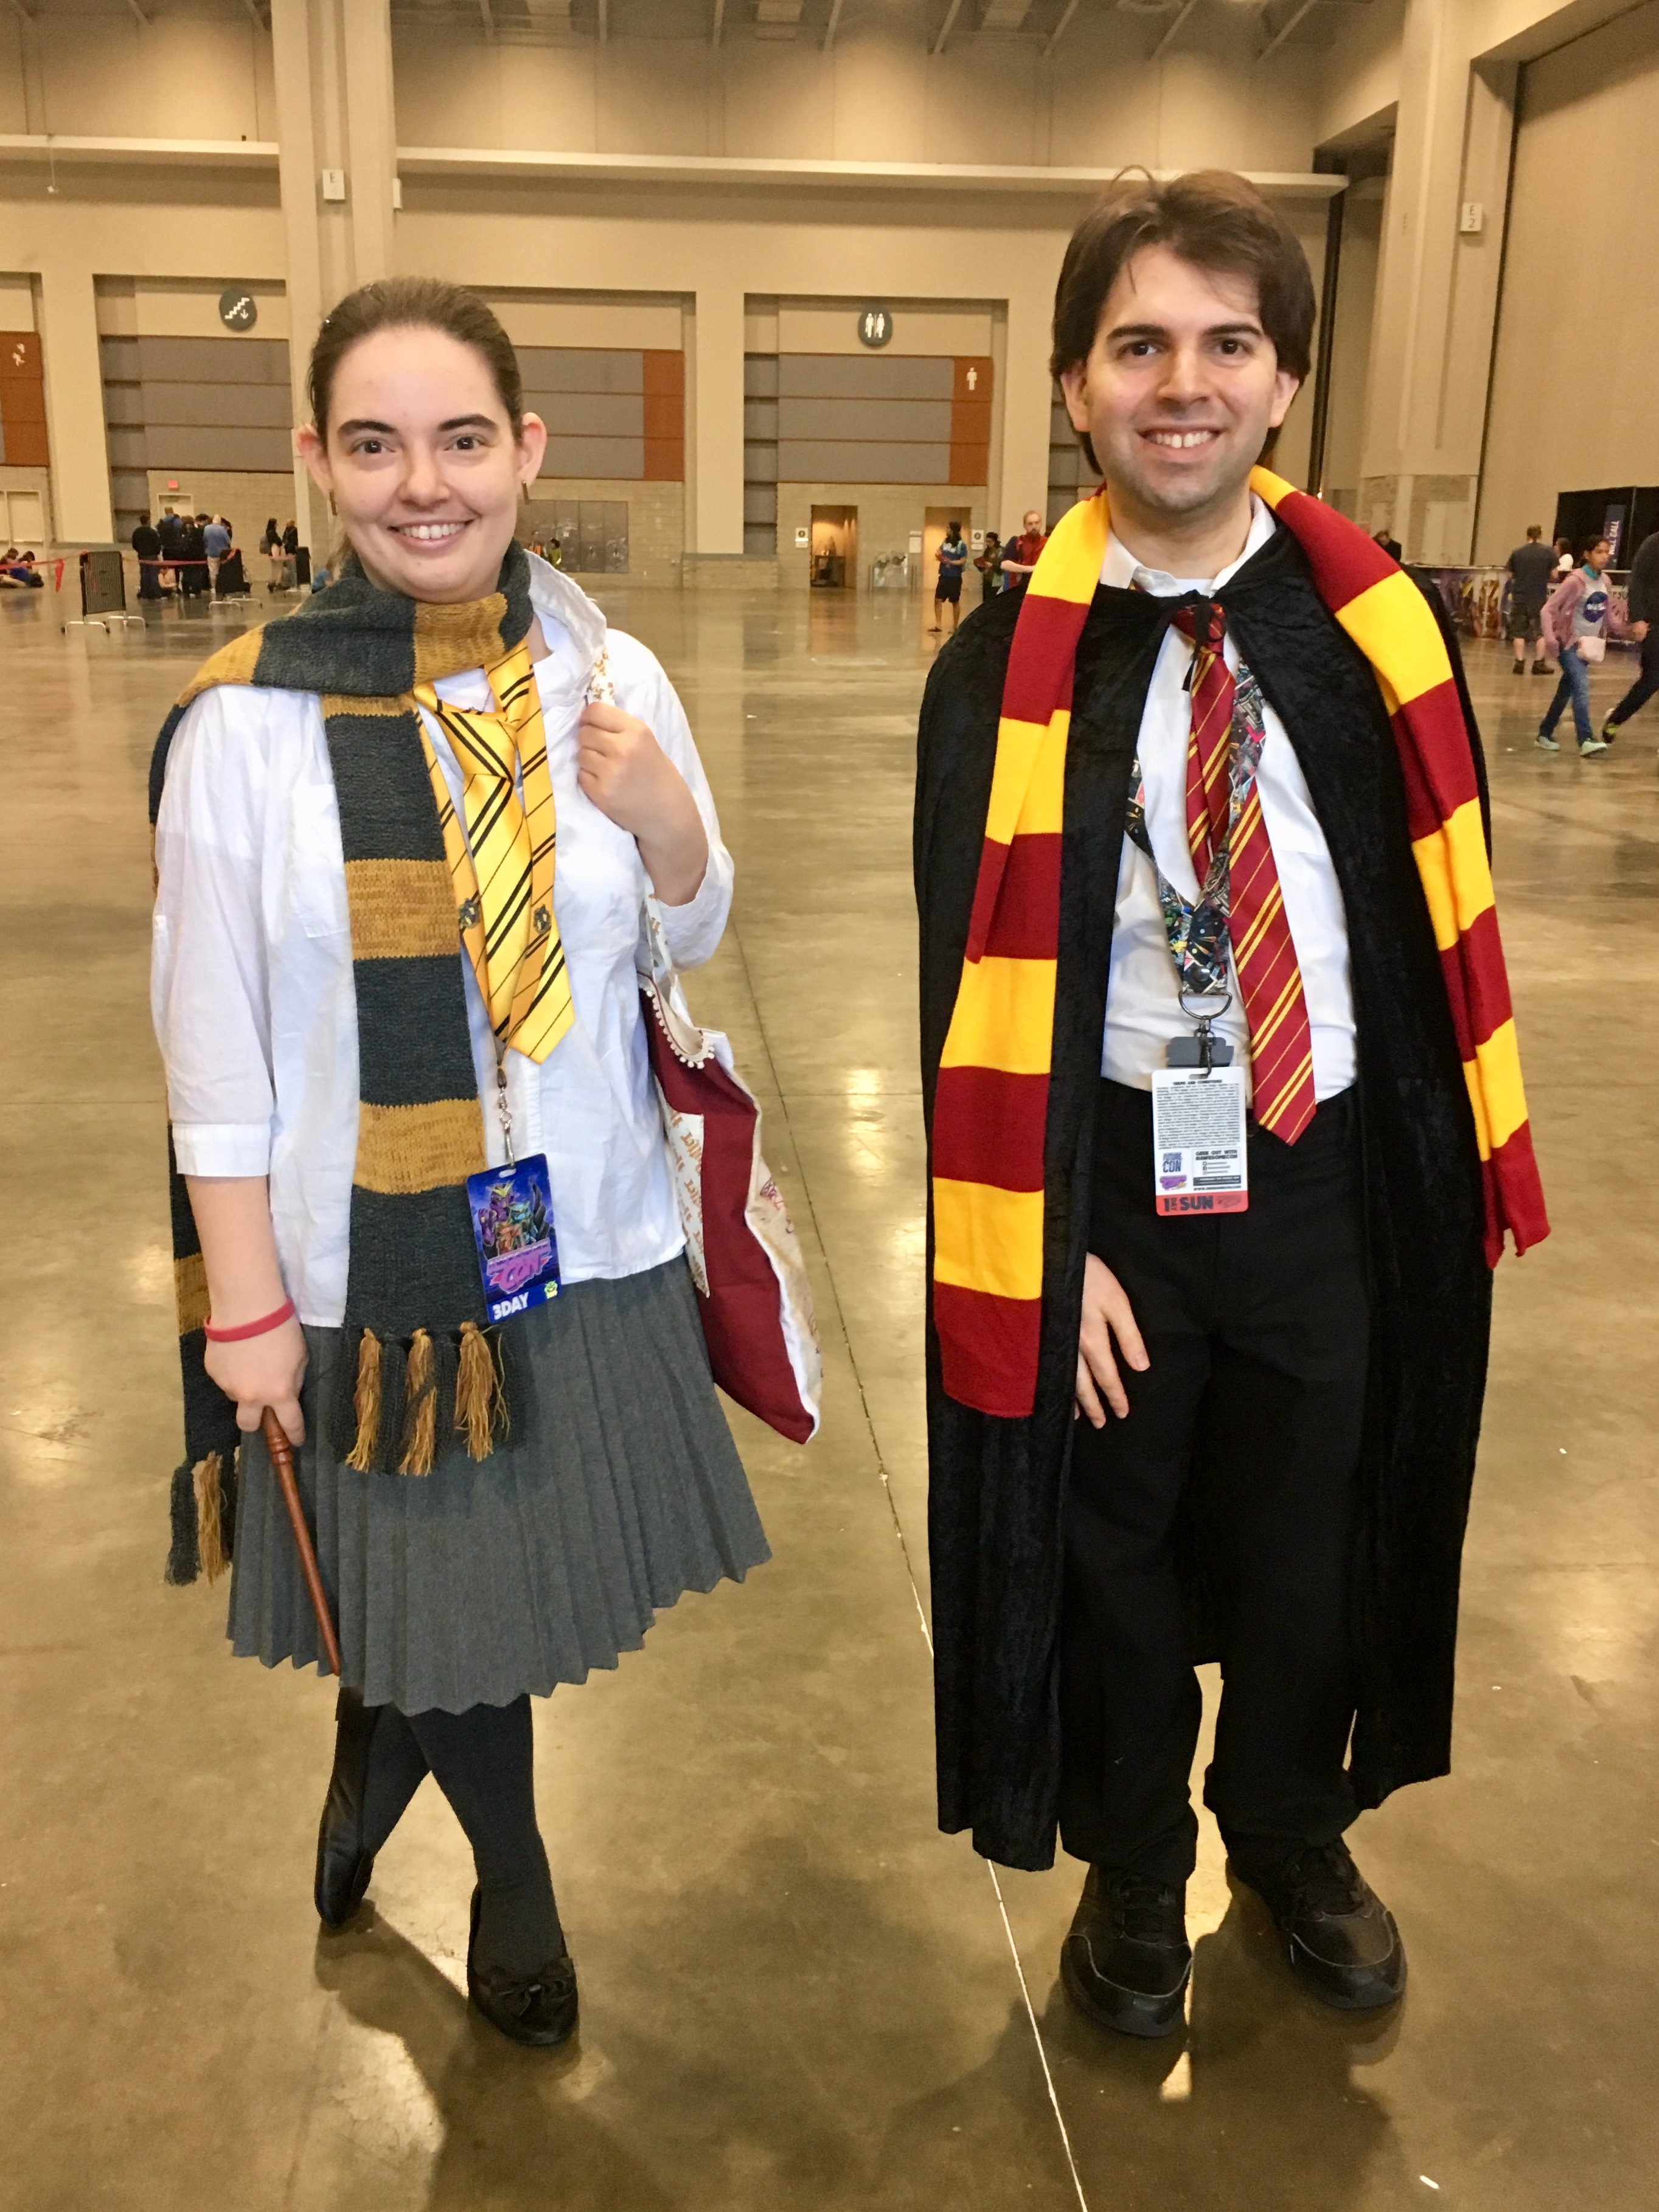 Two happy Hogwarts students!